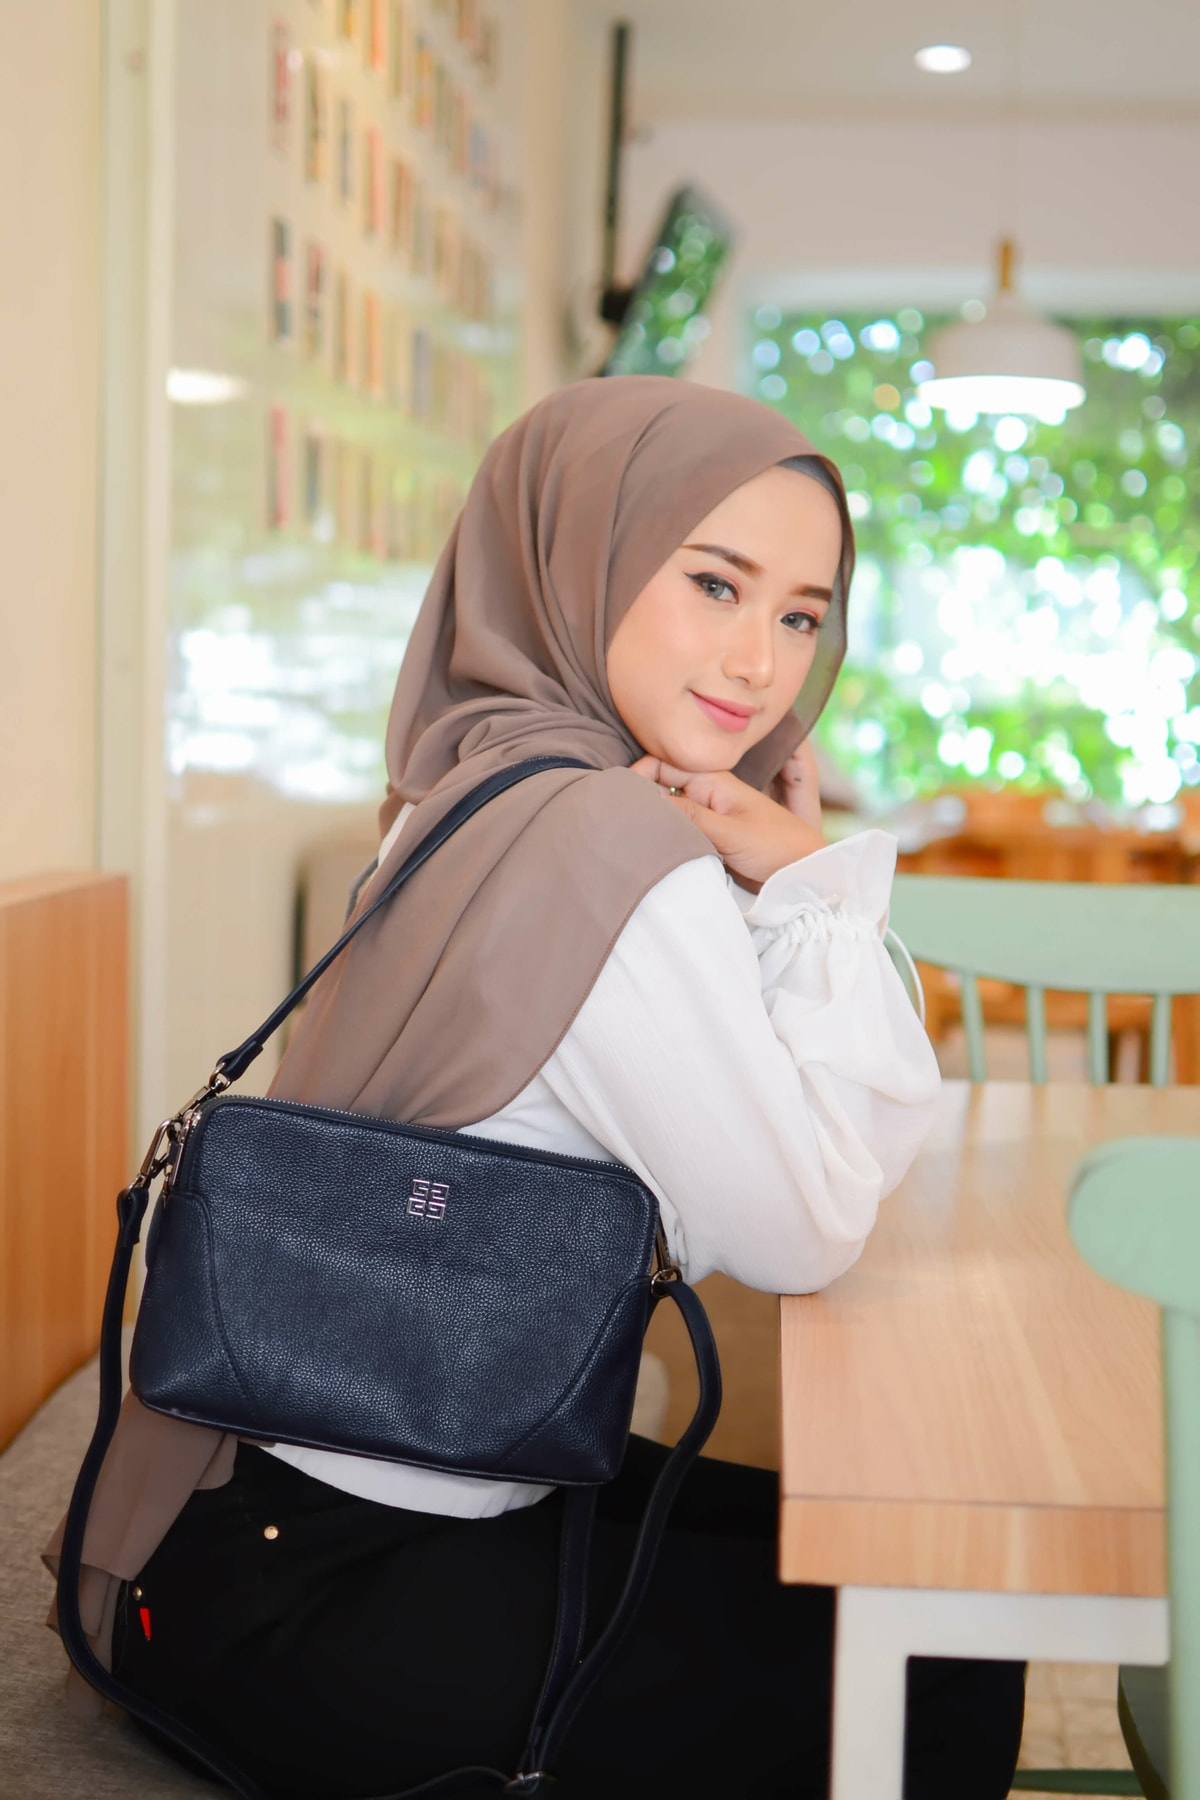 meike bag warna biru tua/ navy